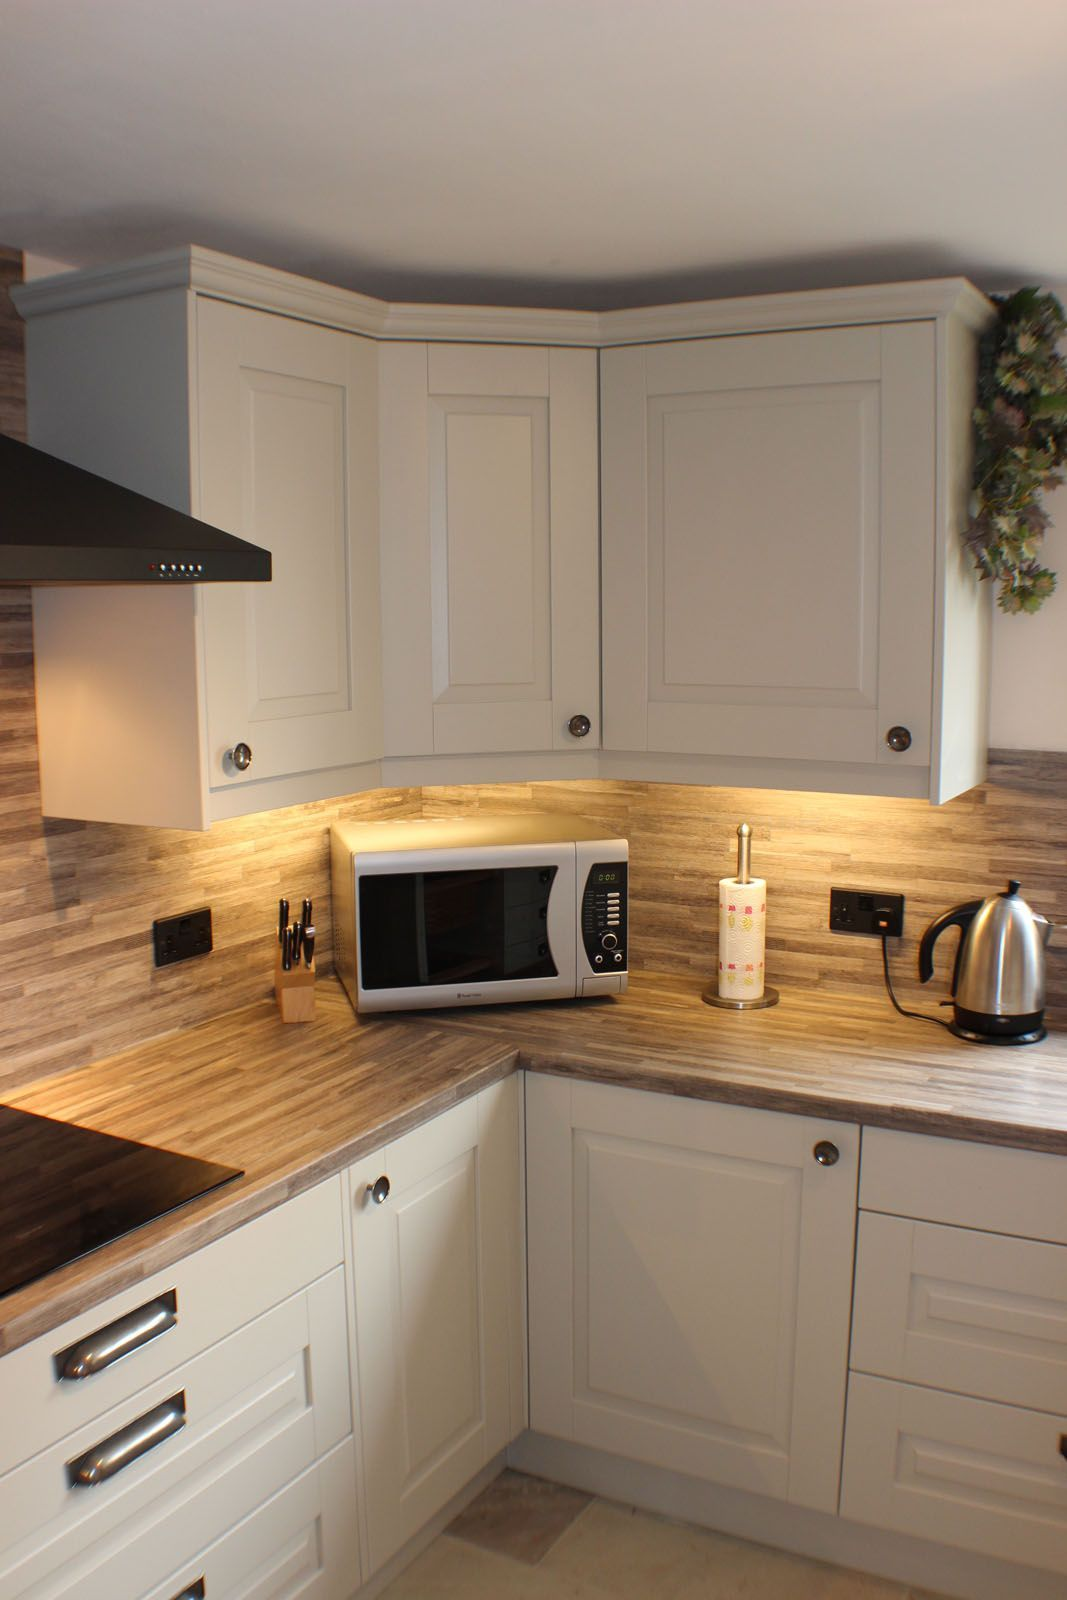 Best 130 Reference Of Kitchen Cabinets Cheap For Sale In 2020 Stylish Kitchen Kitchen Design Small Kitchen Cabinet Design